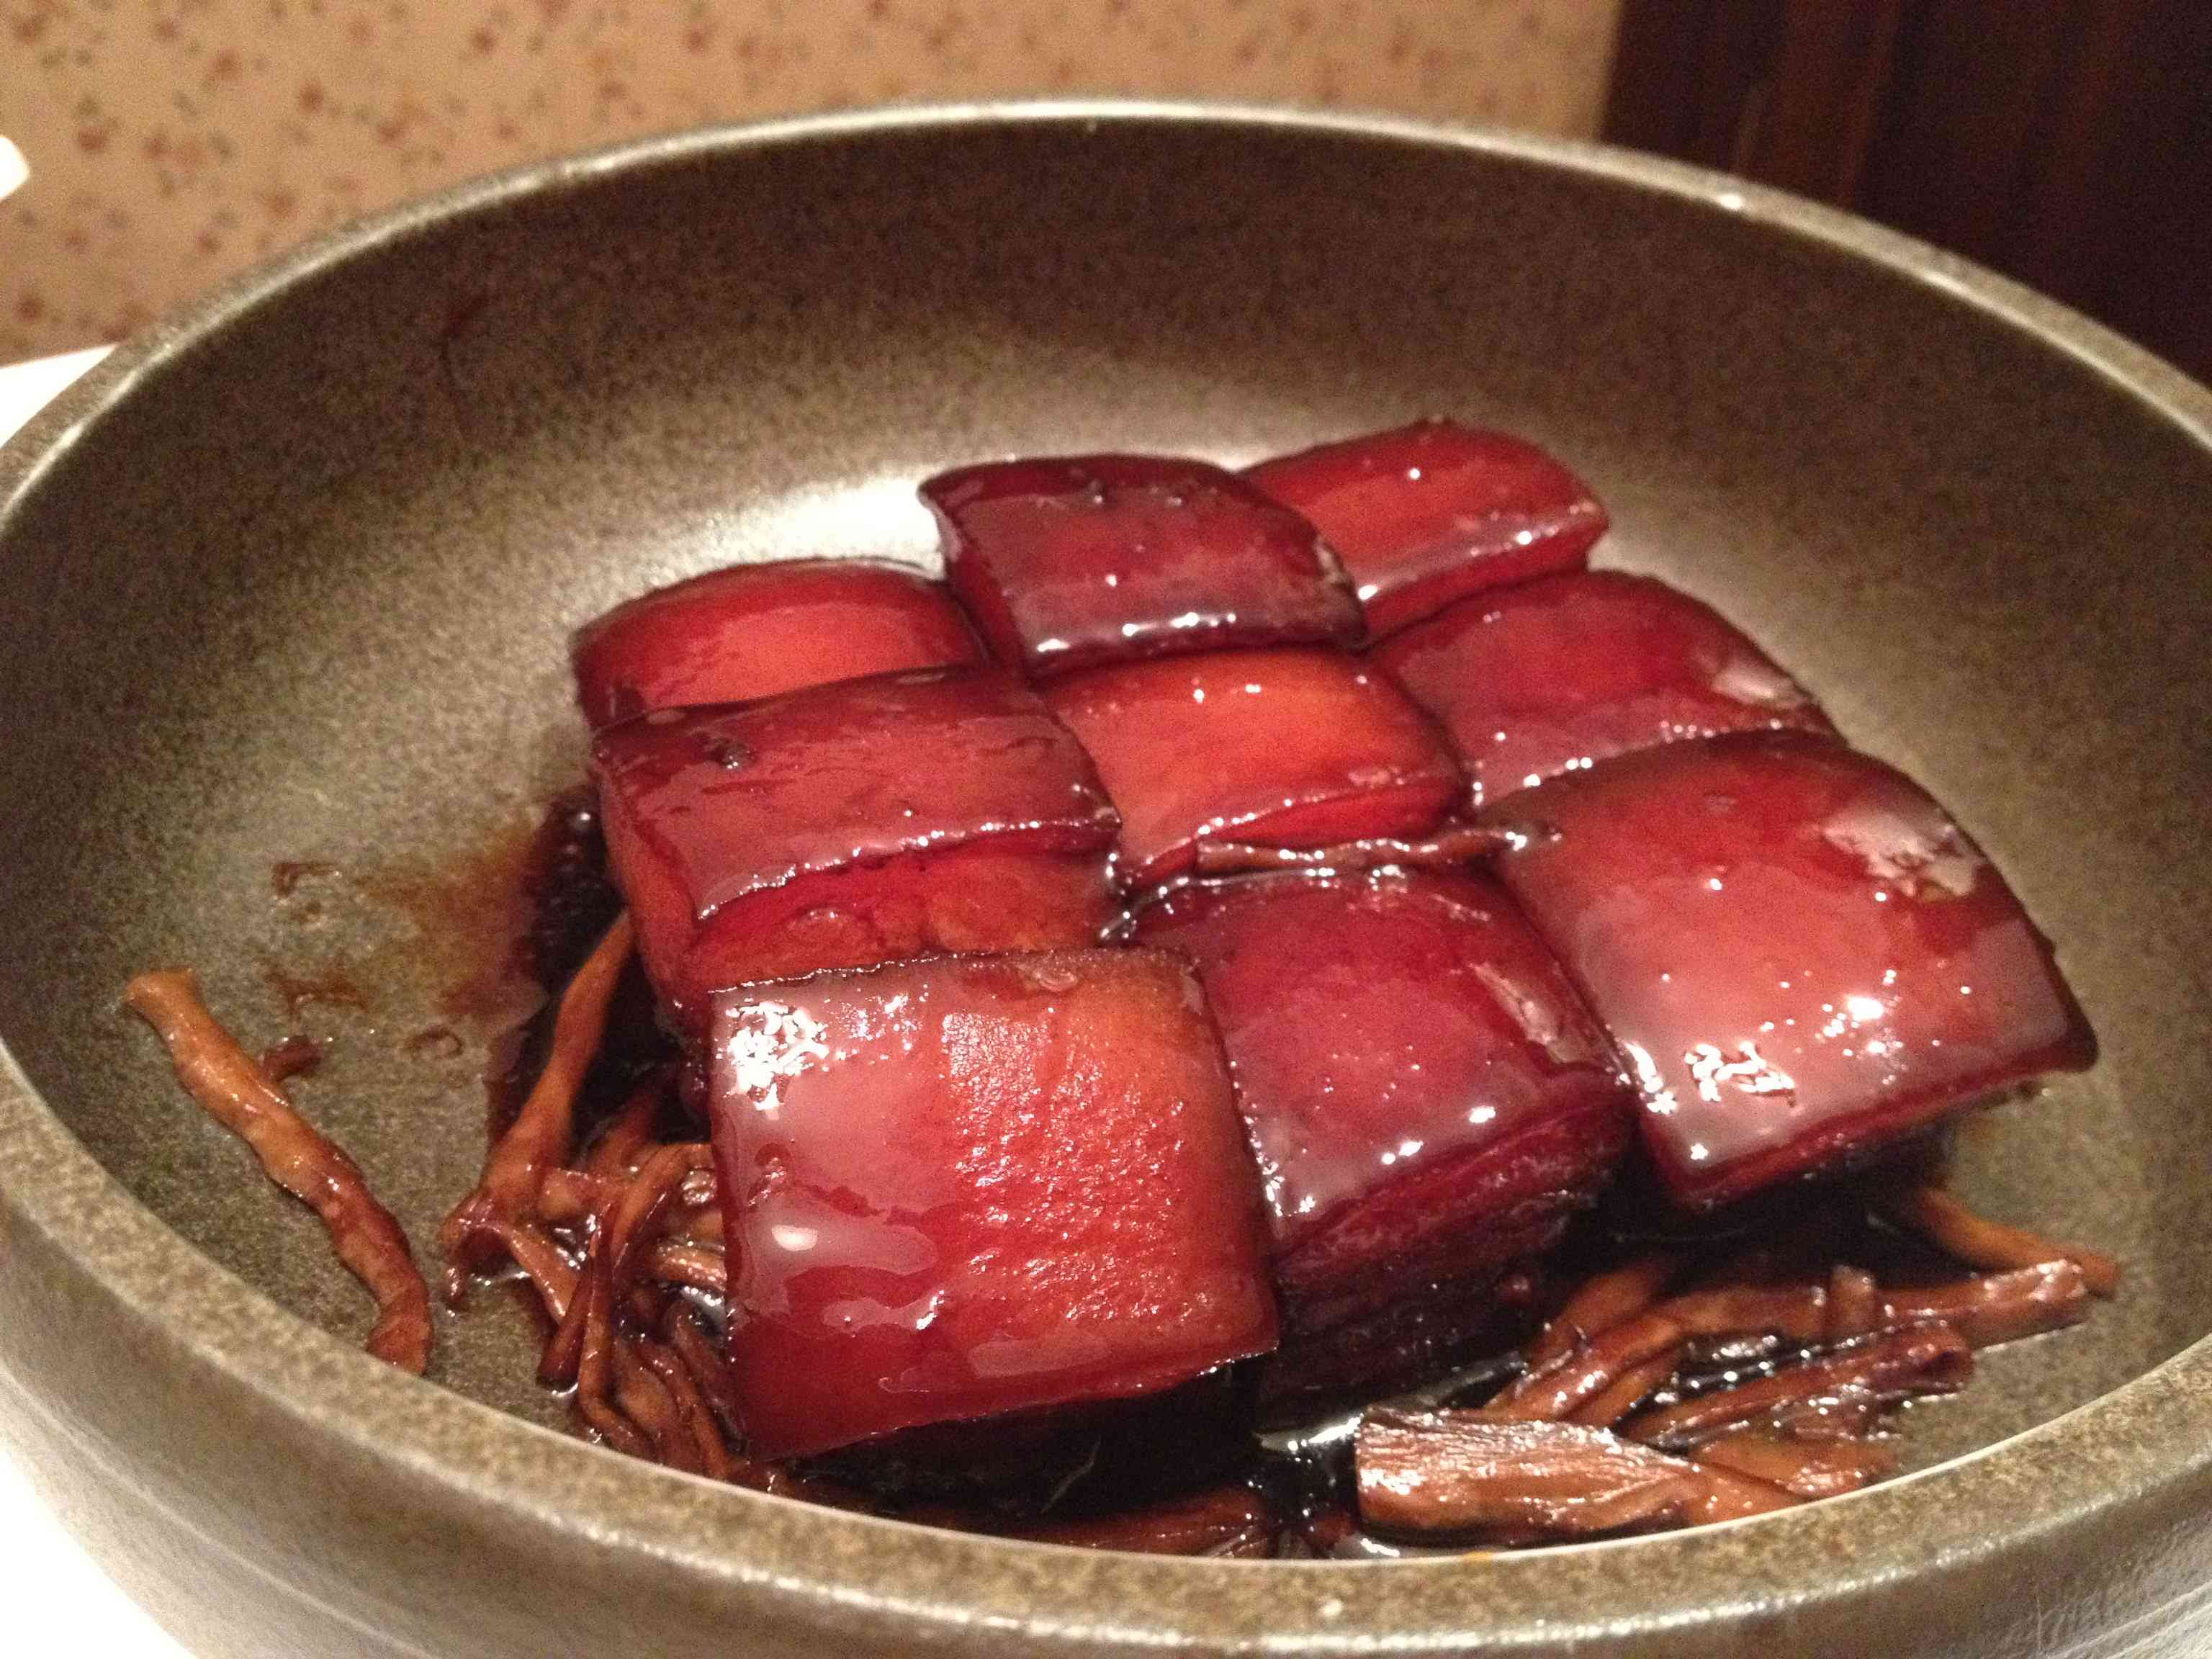 Nine pieces of red braised pork belly in a bowl